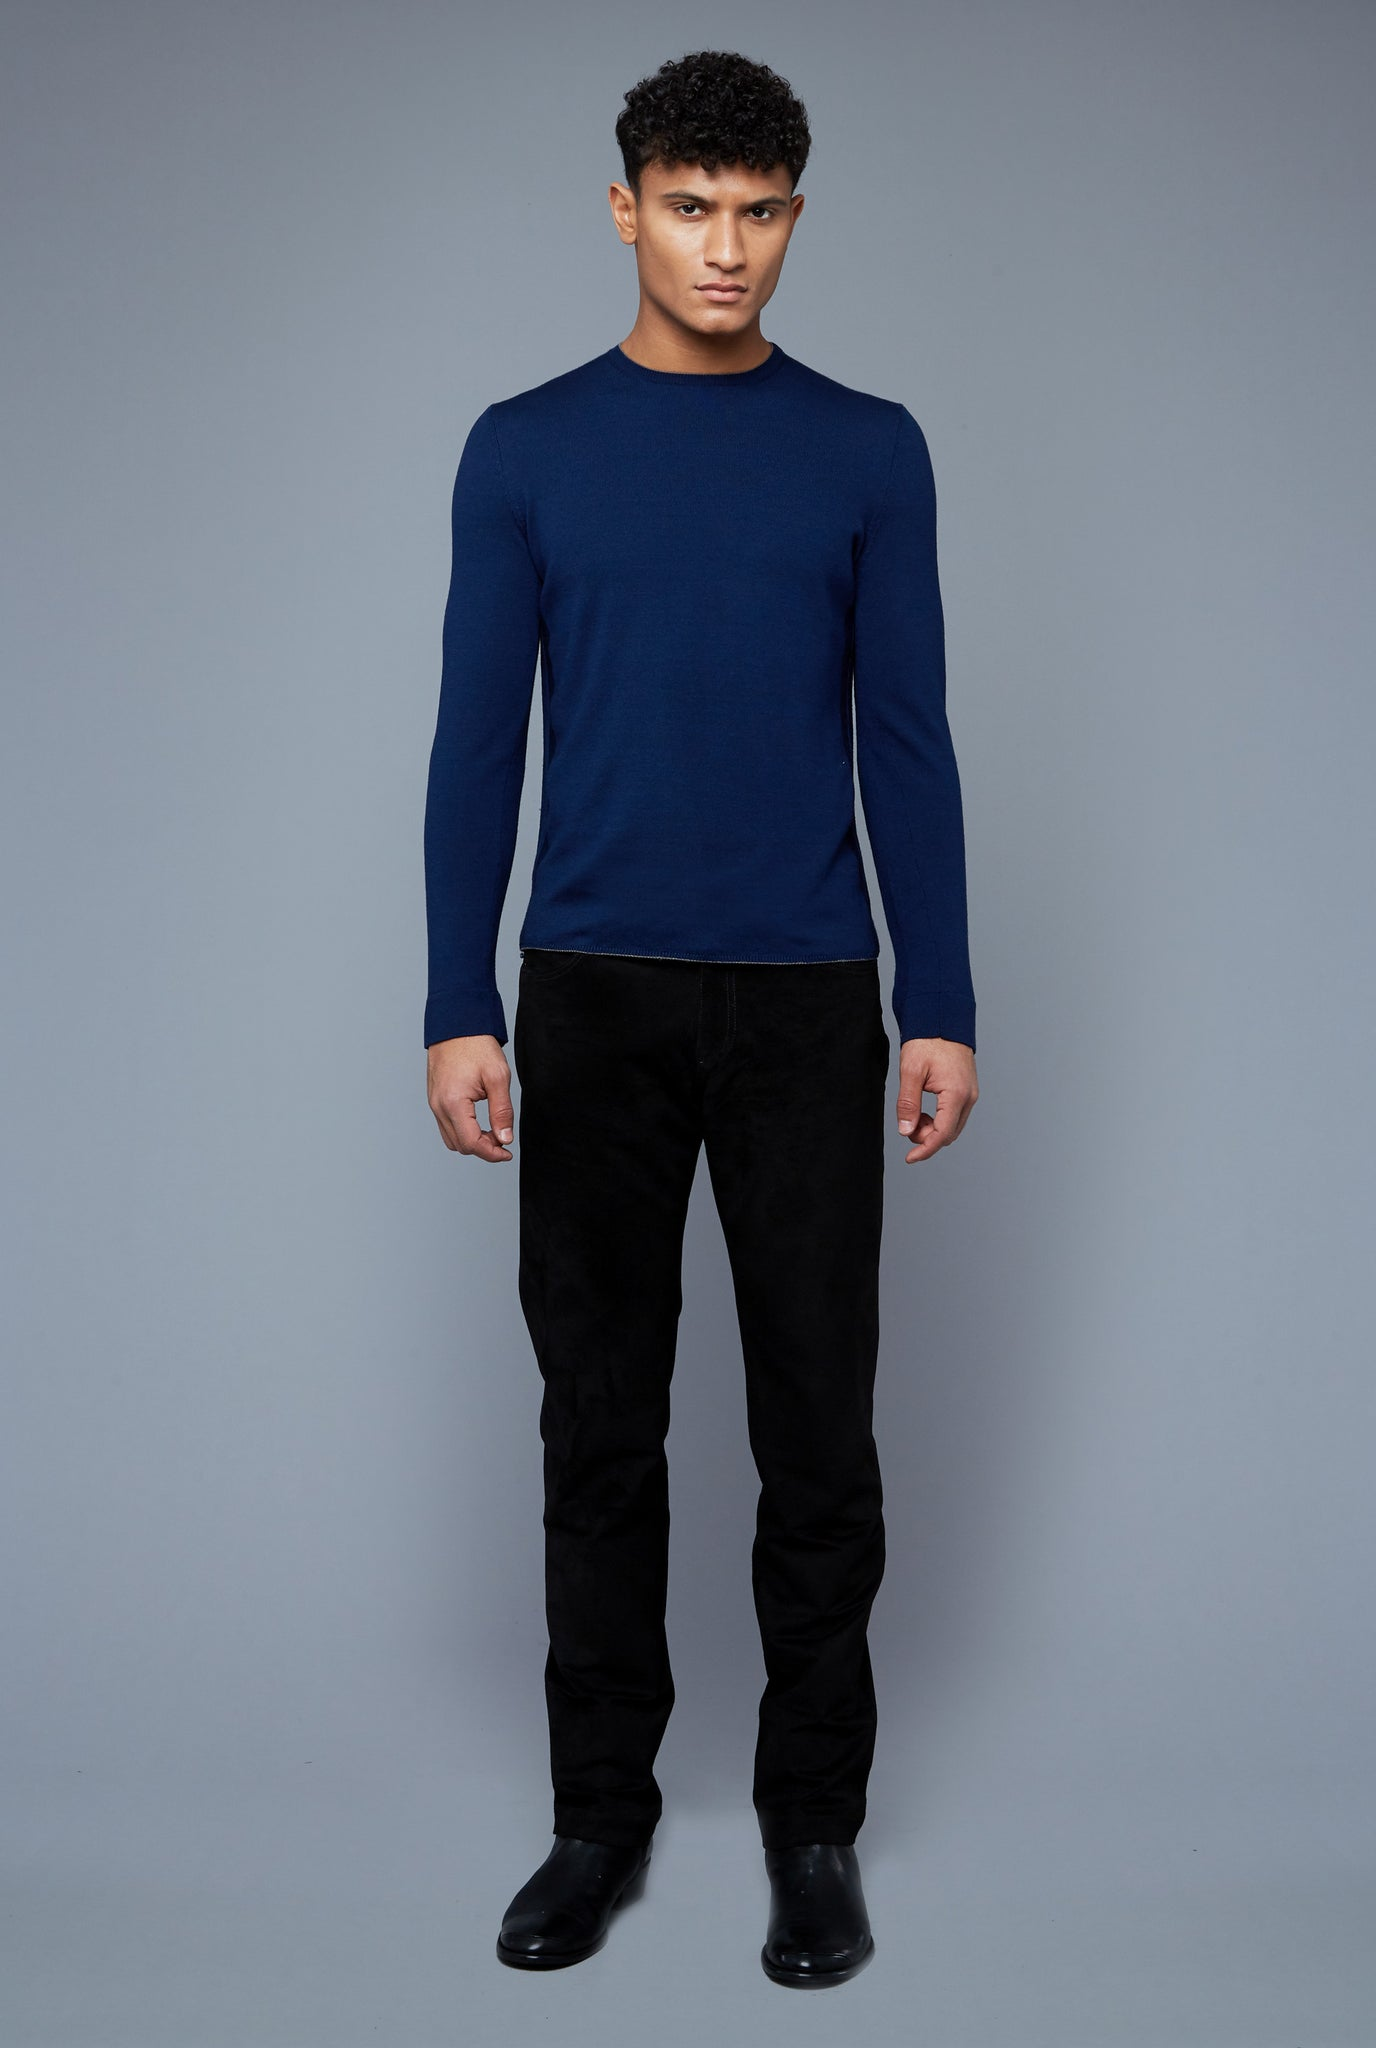 Front View: Model Tre Boutilier wearing Long Sleeve Sweater Tee